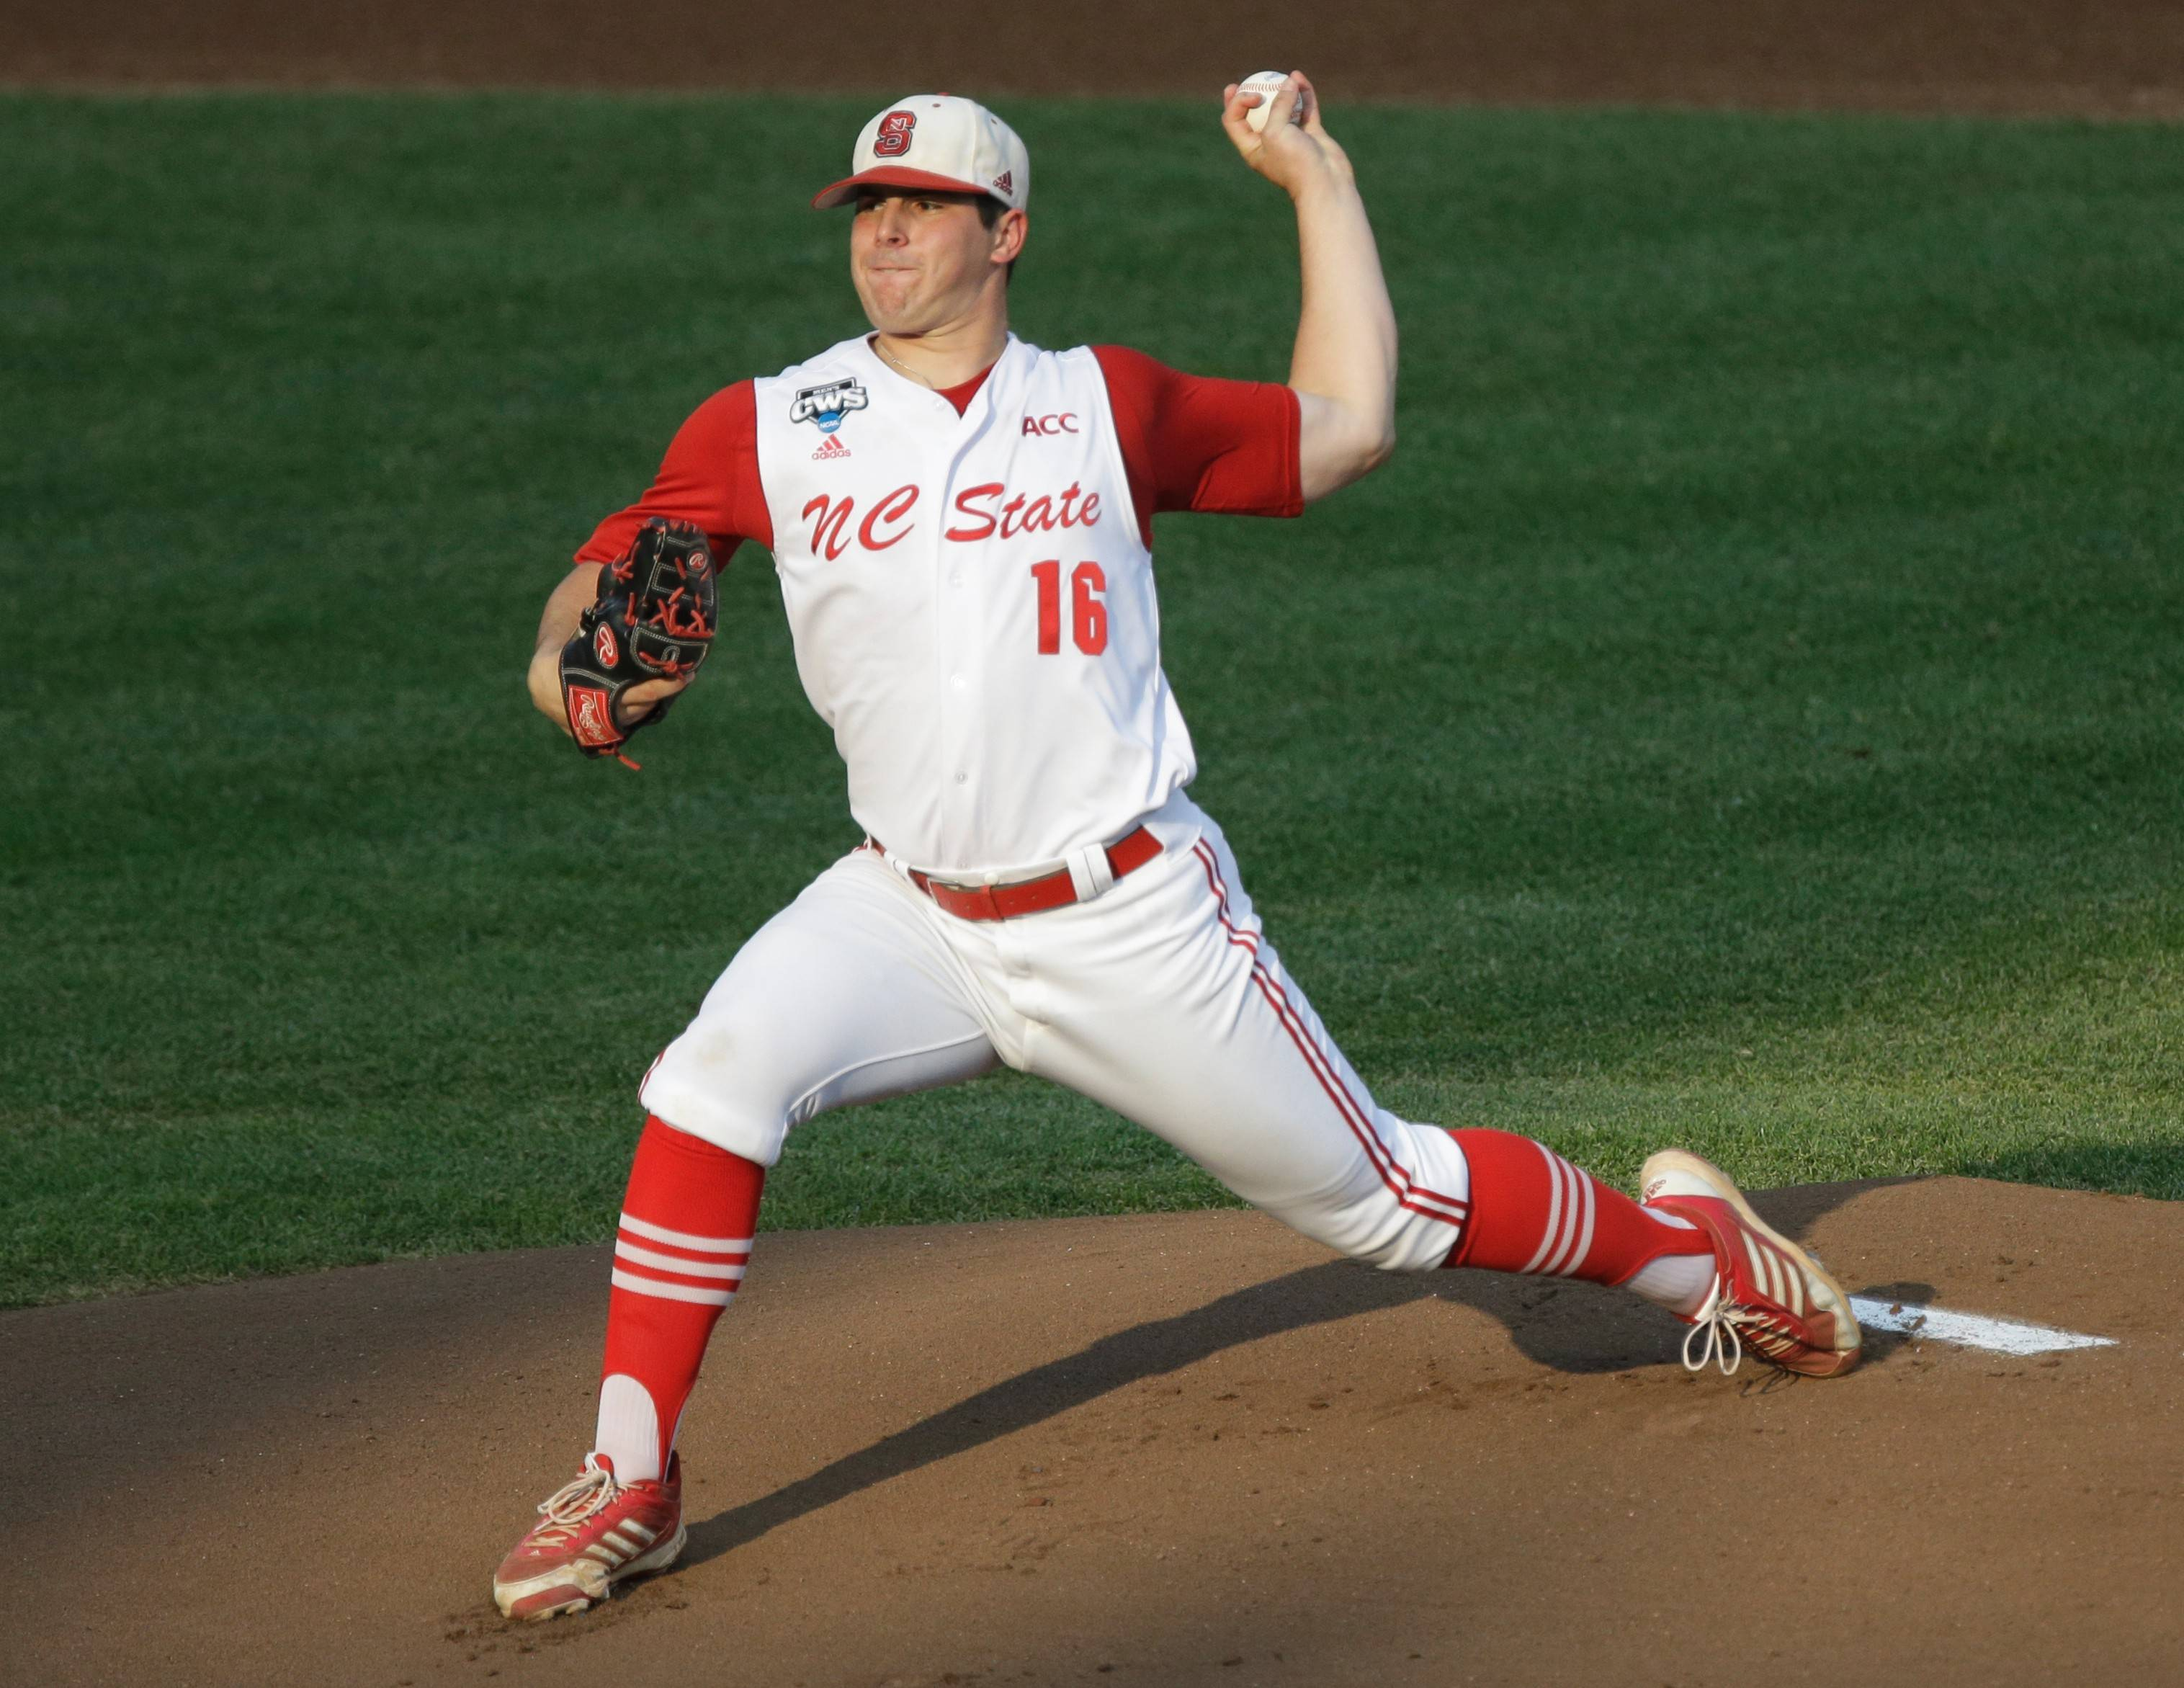 "Carlos Rodon of North Carolina State was projected to be the top pick Thursday in Major League Baseball's amateur draft. Instead he was selected by the White Sox with the third overall pick. His reaction? ""I wouldn't say there was disappointment,"" Rodon said on a conference call Friday. ""I would say motivation. I got picked by a great club with a lot of history. Looking forward to it."""